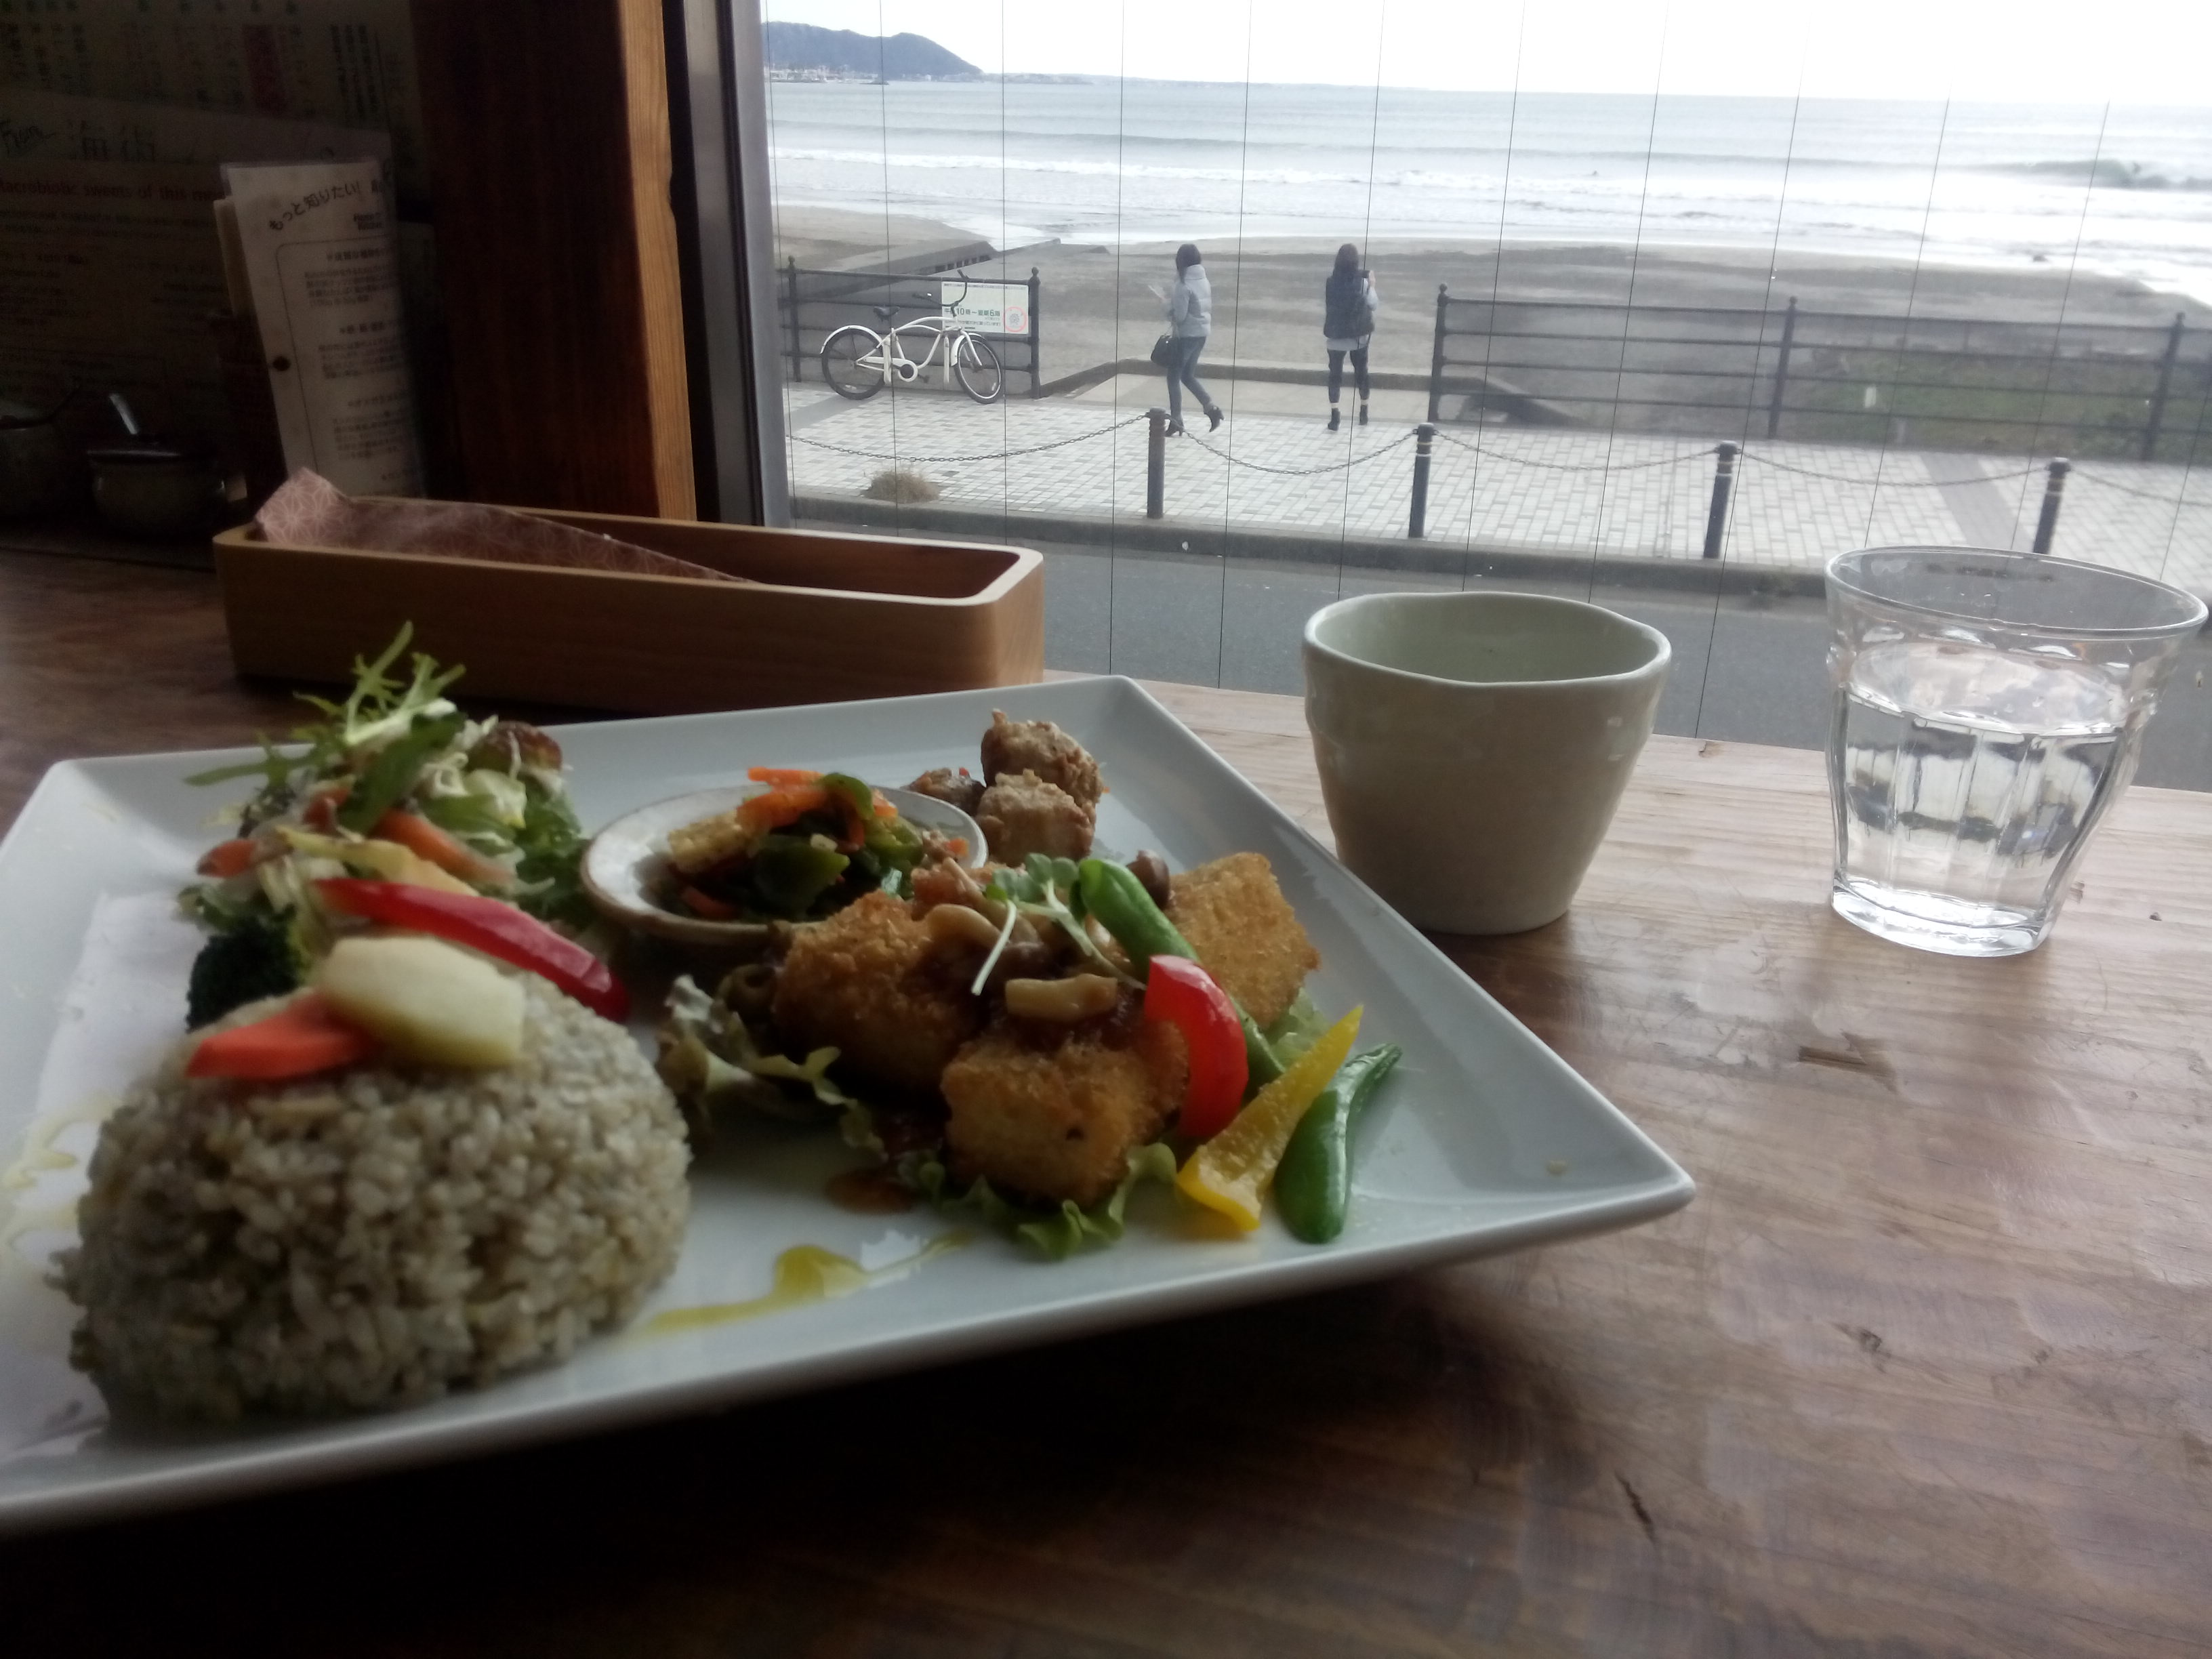 Tofu plate and sea view